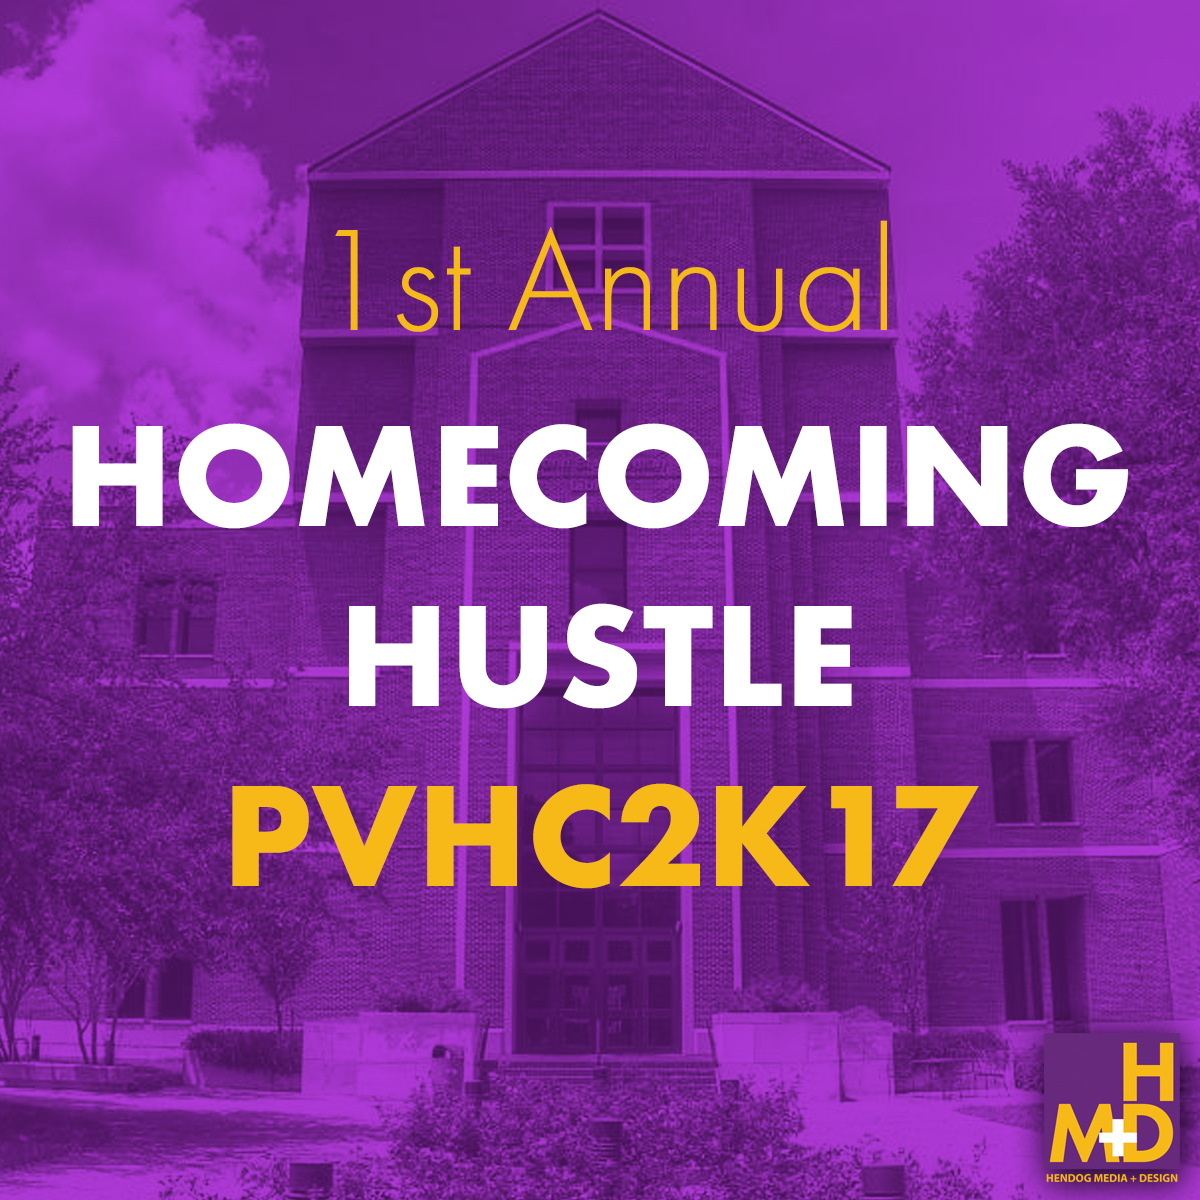 HDMD Cover Photo Item PVAMU.jpg